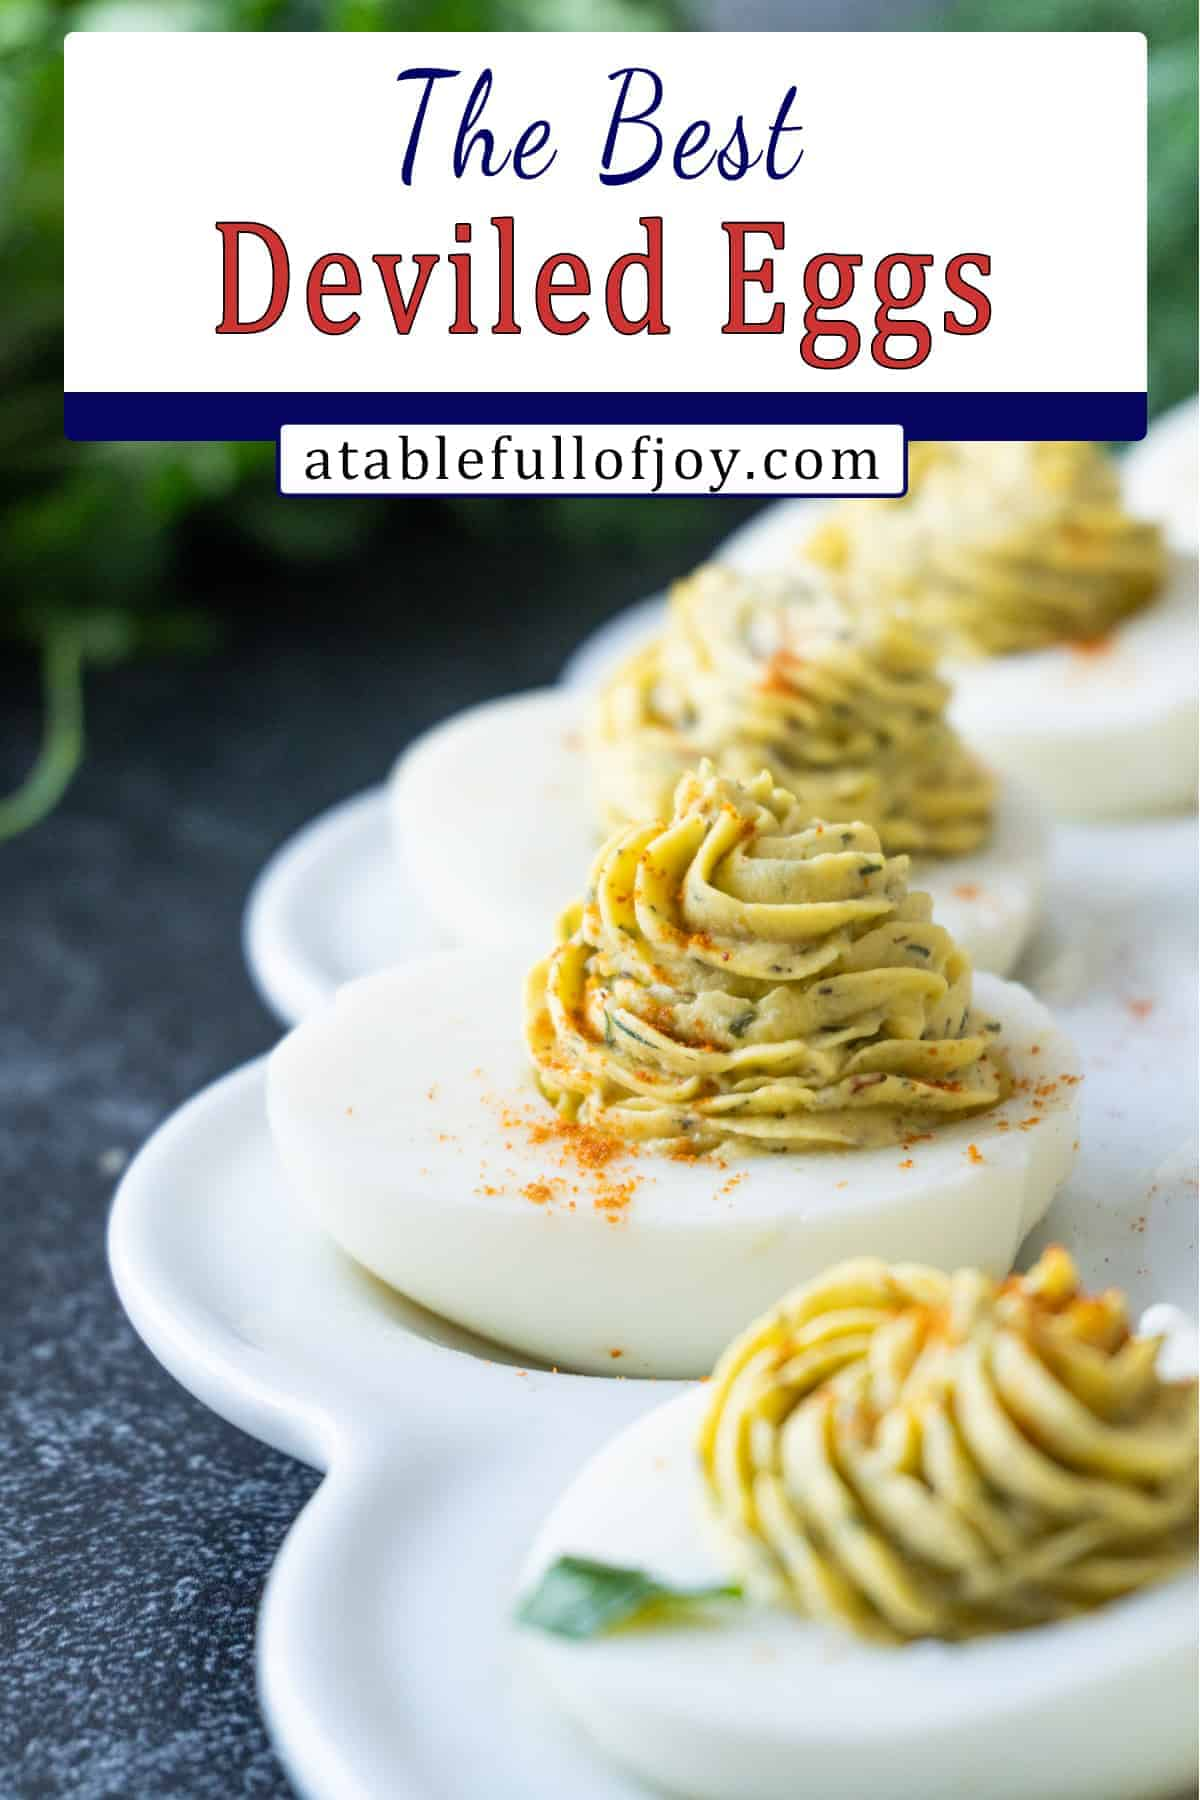 deviled eggs pinterest pin